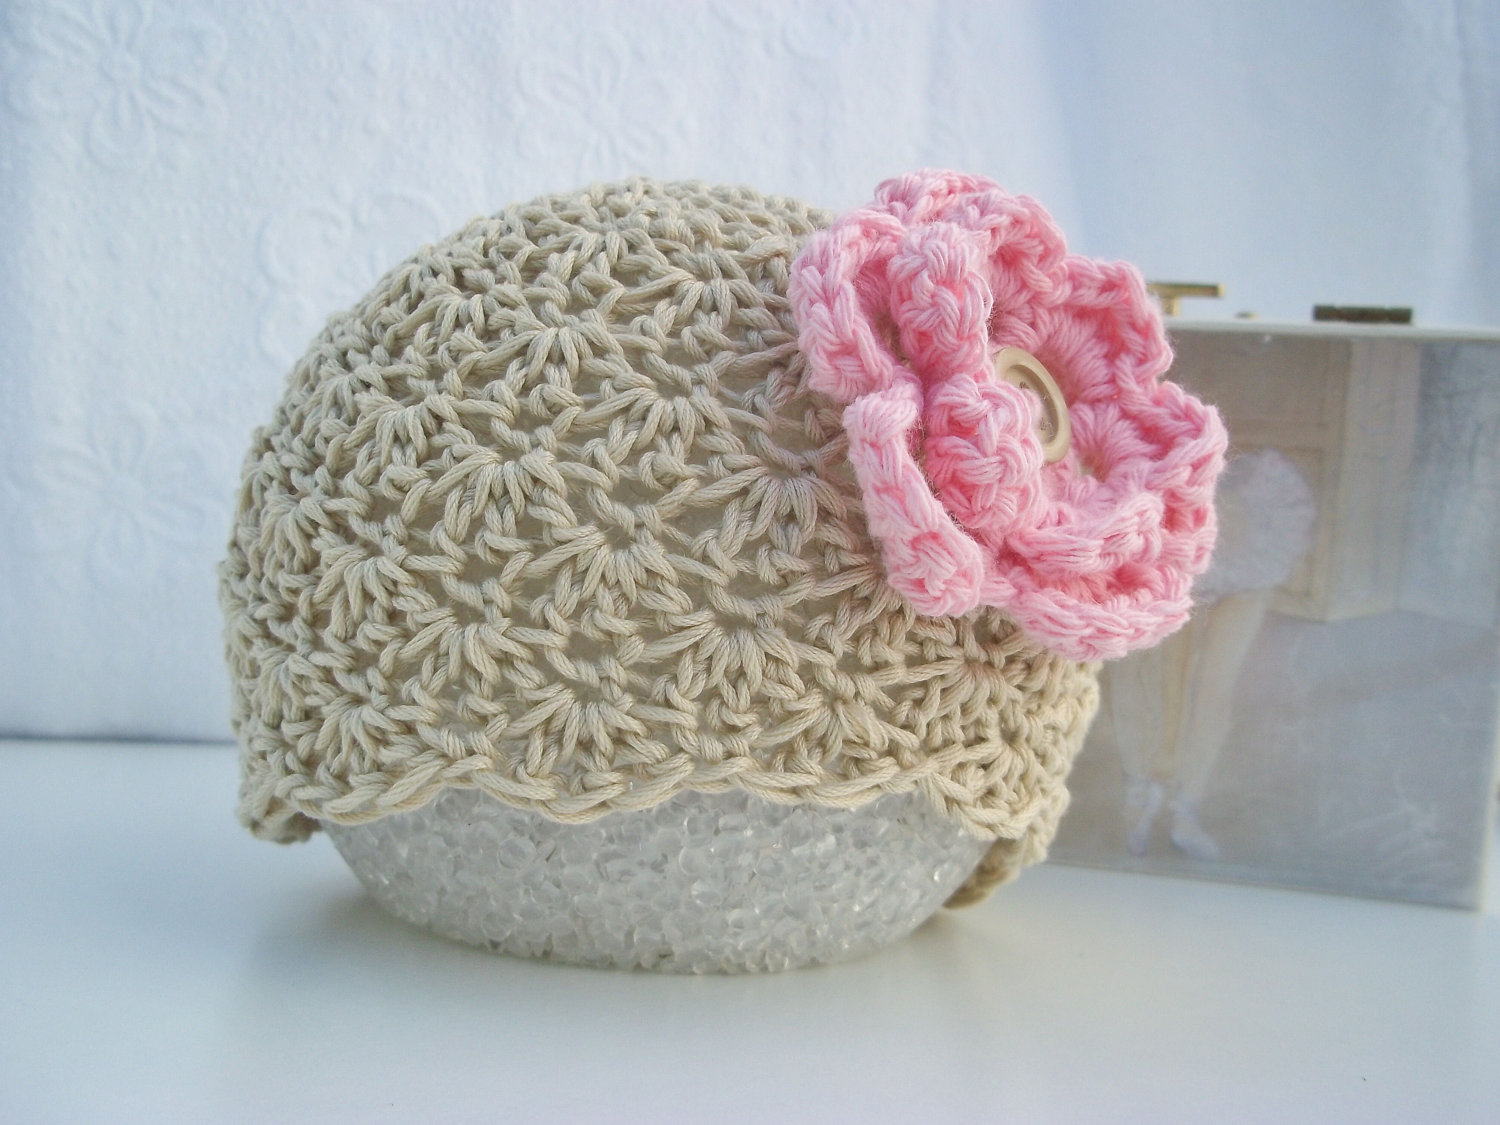 Crocheting A Baby Hat : Crochet baby hat - Baby girl hat - Newborn baby hat - Beige - Tan ...